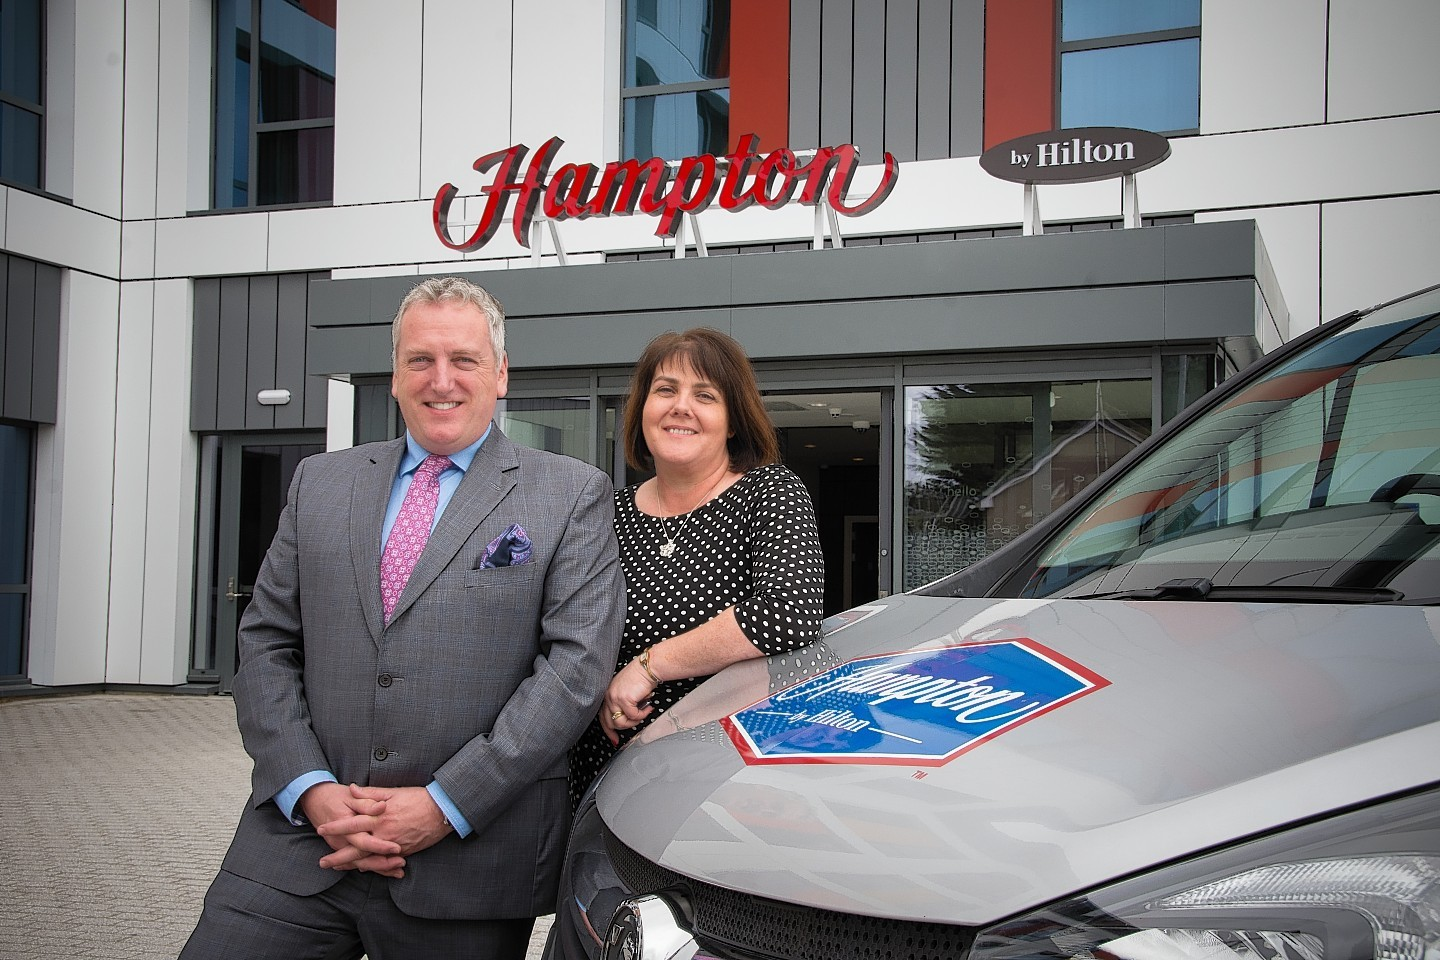 Mike Johnstone, general manager at Hampton by Hilton Aberdeen Westhill, and Sandra Brooks, general manager at Hampton by Hilton Aberdeen Airport